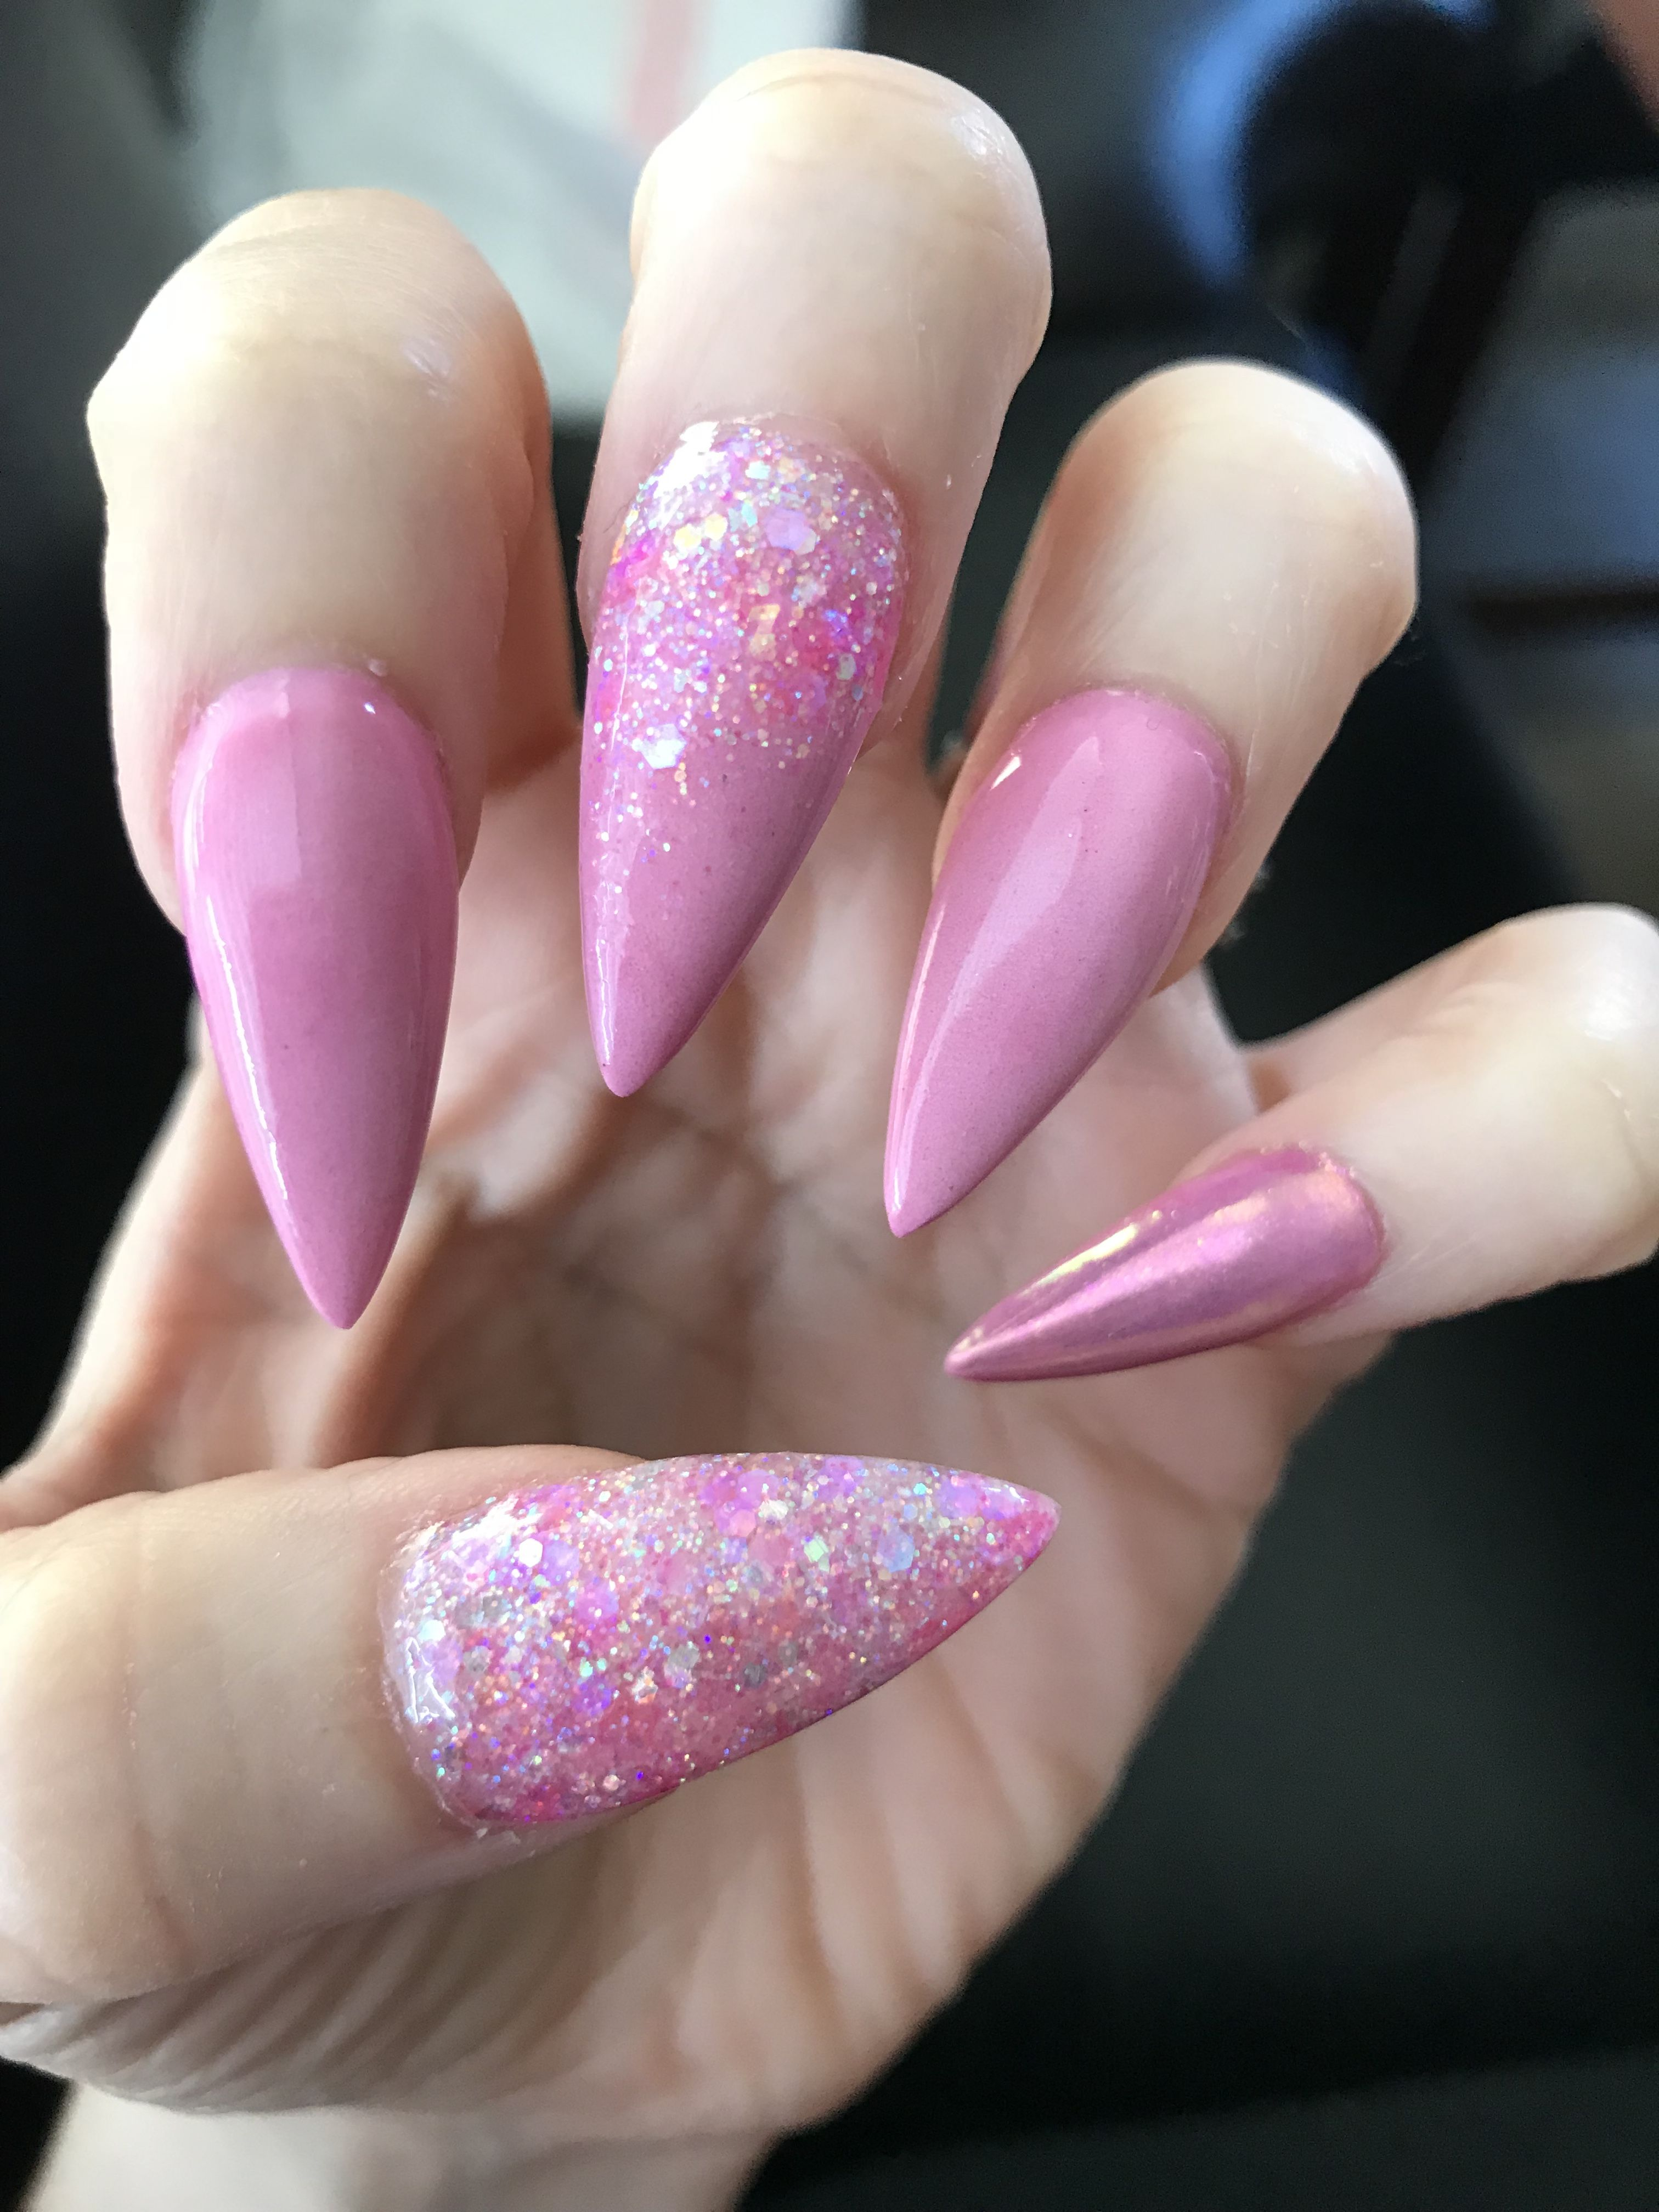 Pink Stiletto Nails Acrylic Nails By Lourdes Merced Ca 209 Pink Glitter Chrome Pink Acrylic Nail Shapes Pink Stiletto Nails Long Stiletto Nails